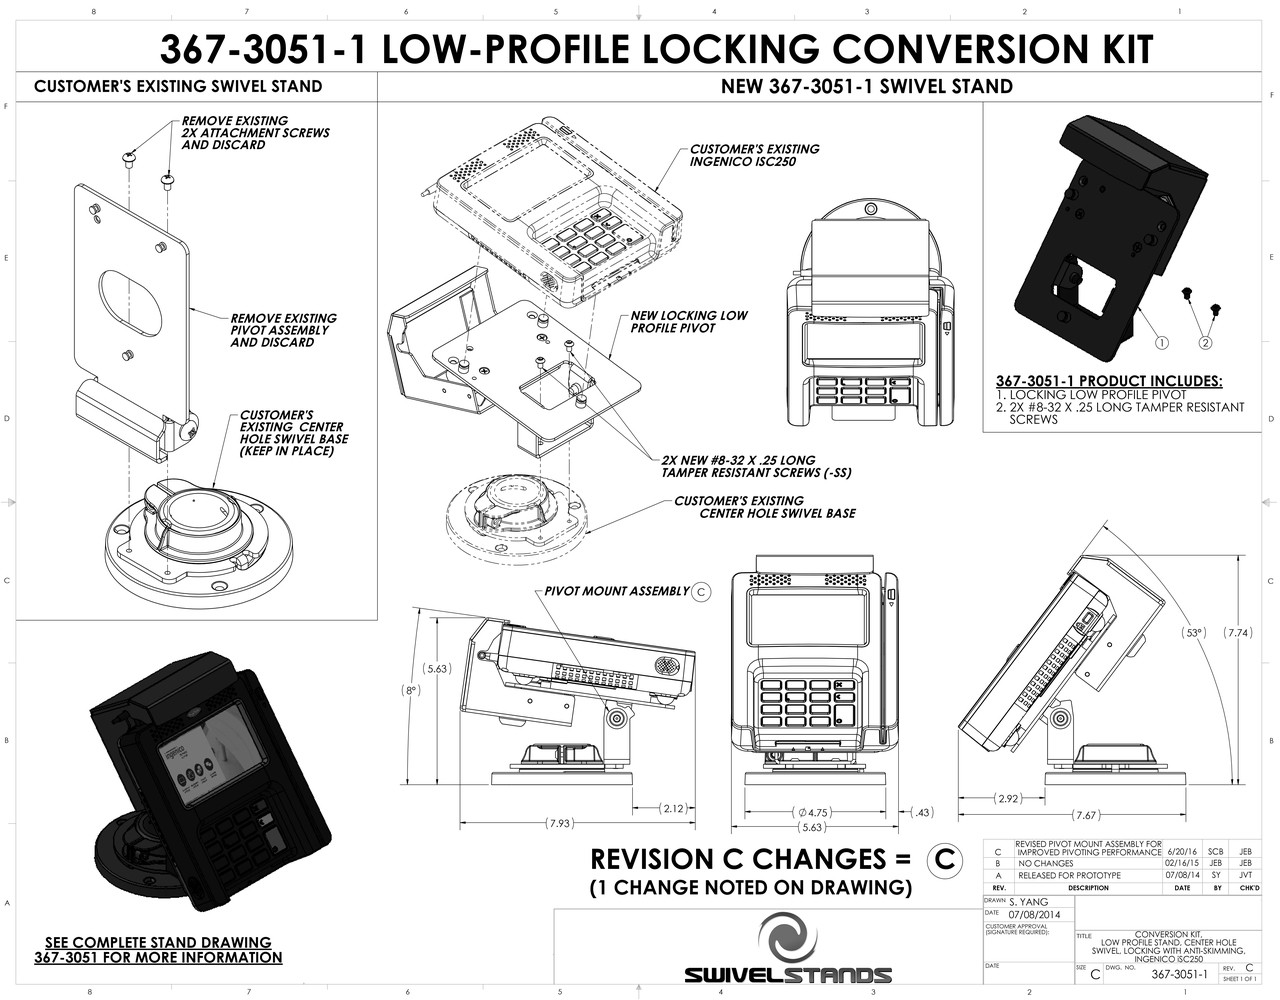 Swivel Stands Conversion Kit, Locking, Low Profile Ingenico iSC250